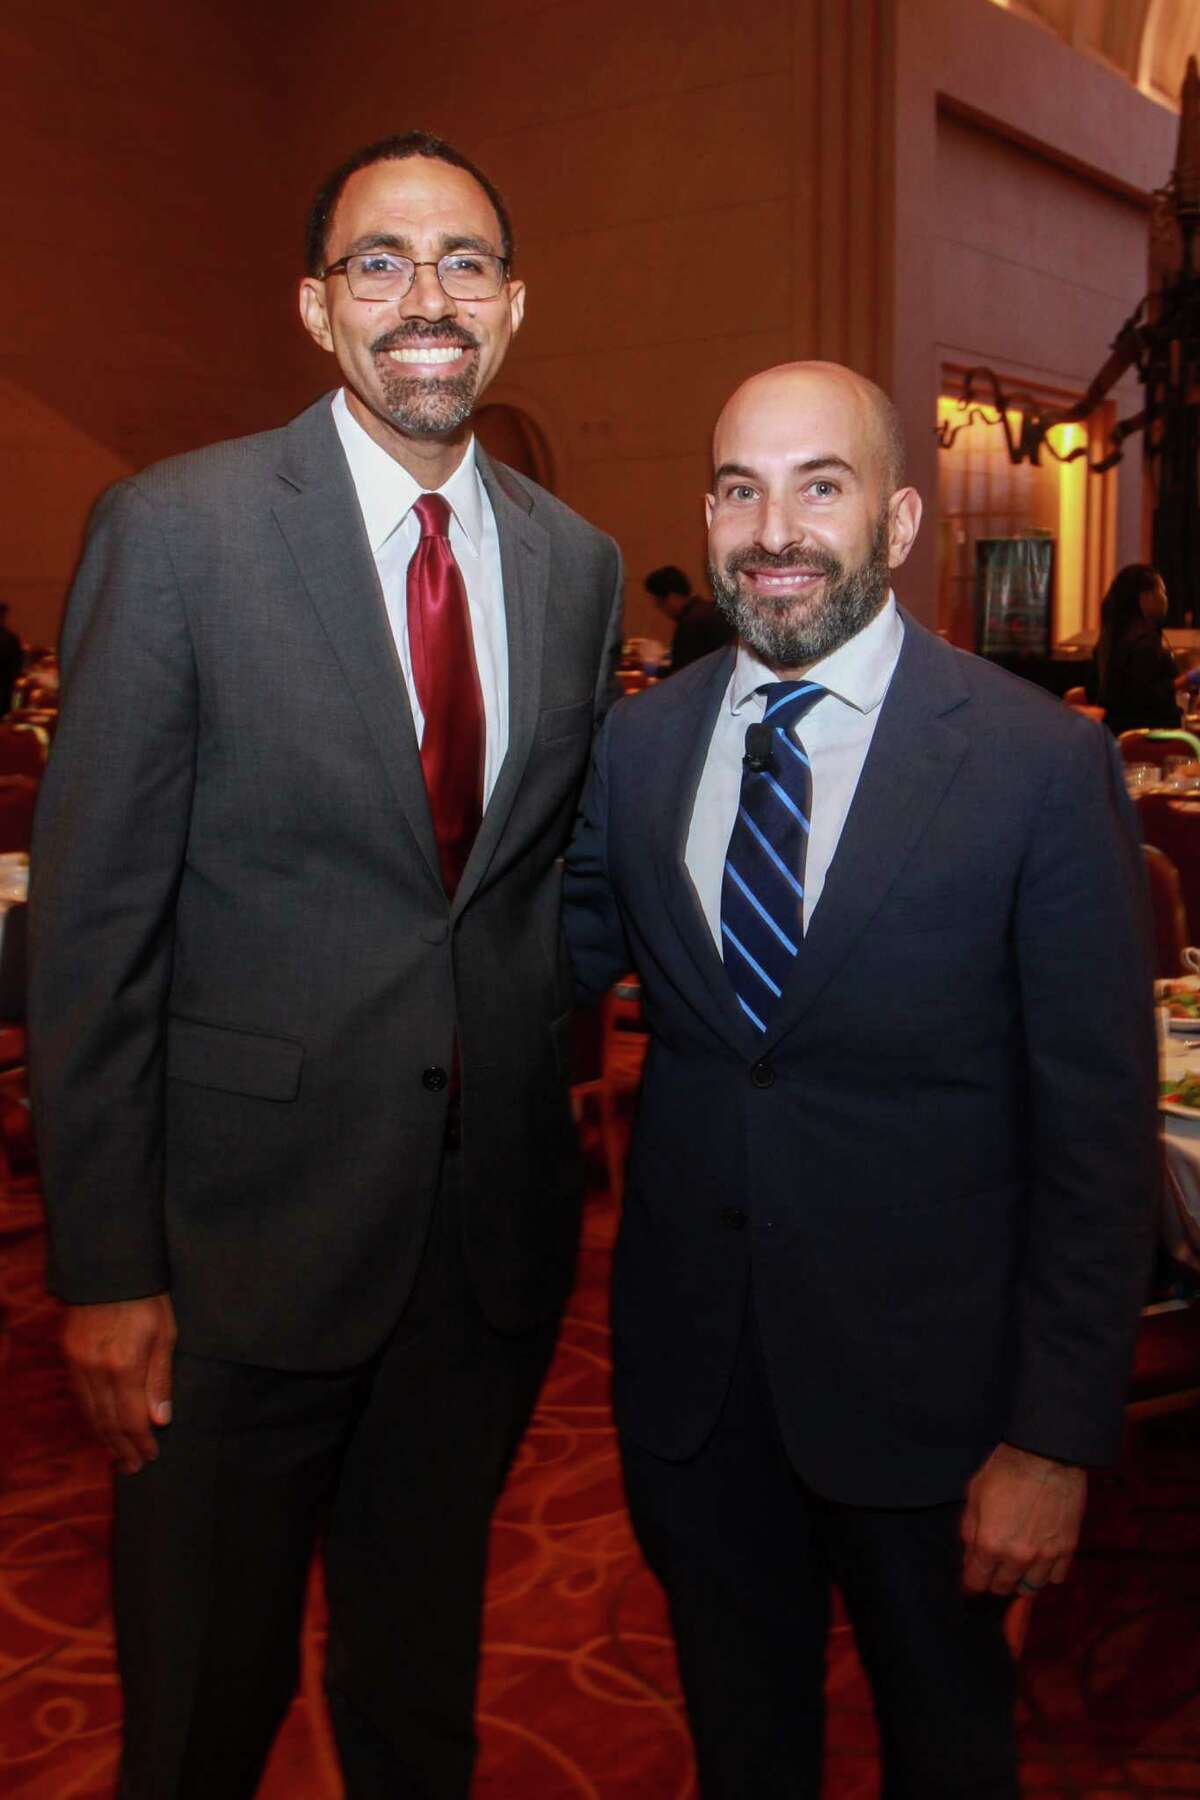 John King, left, and Mark DiBella at the YES Prep Leading Houston Forward Luncheon at the Wortham Theater on October 16, 2019.